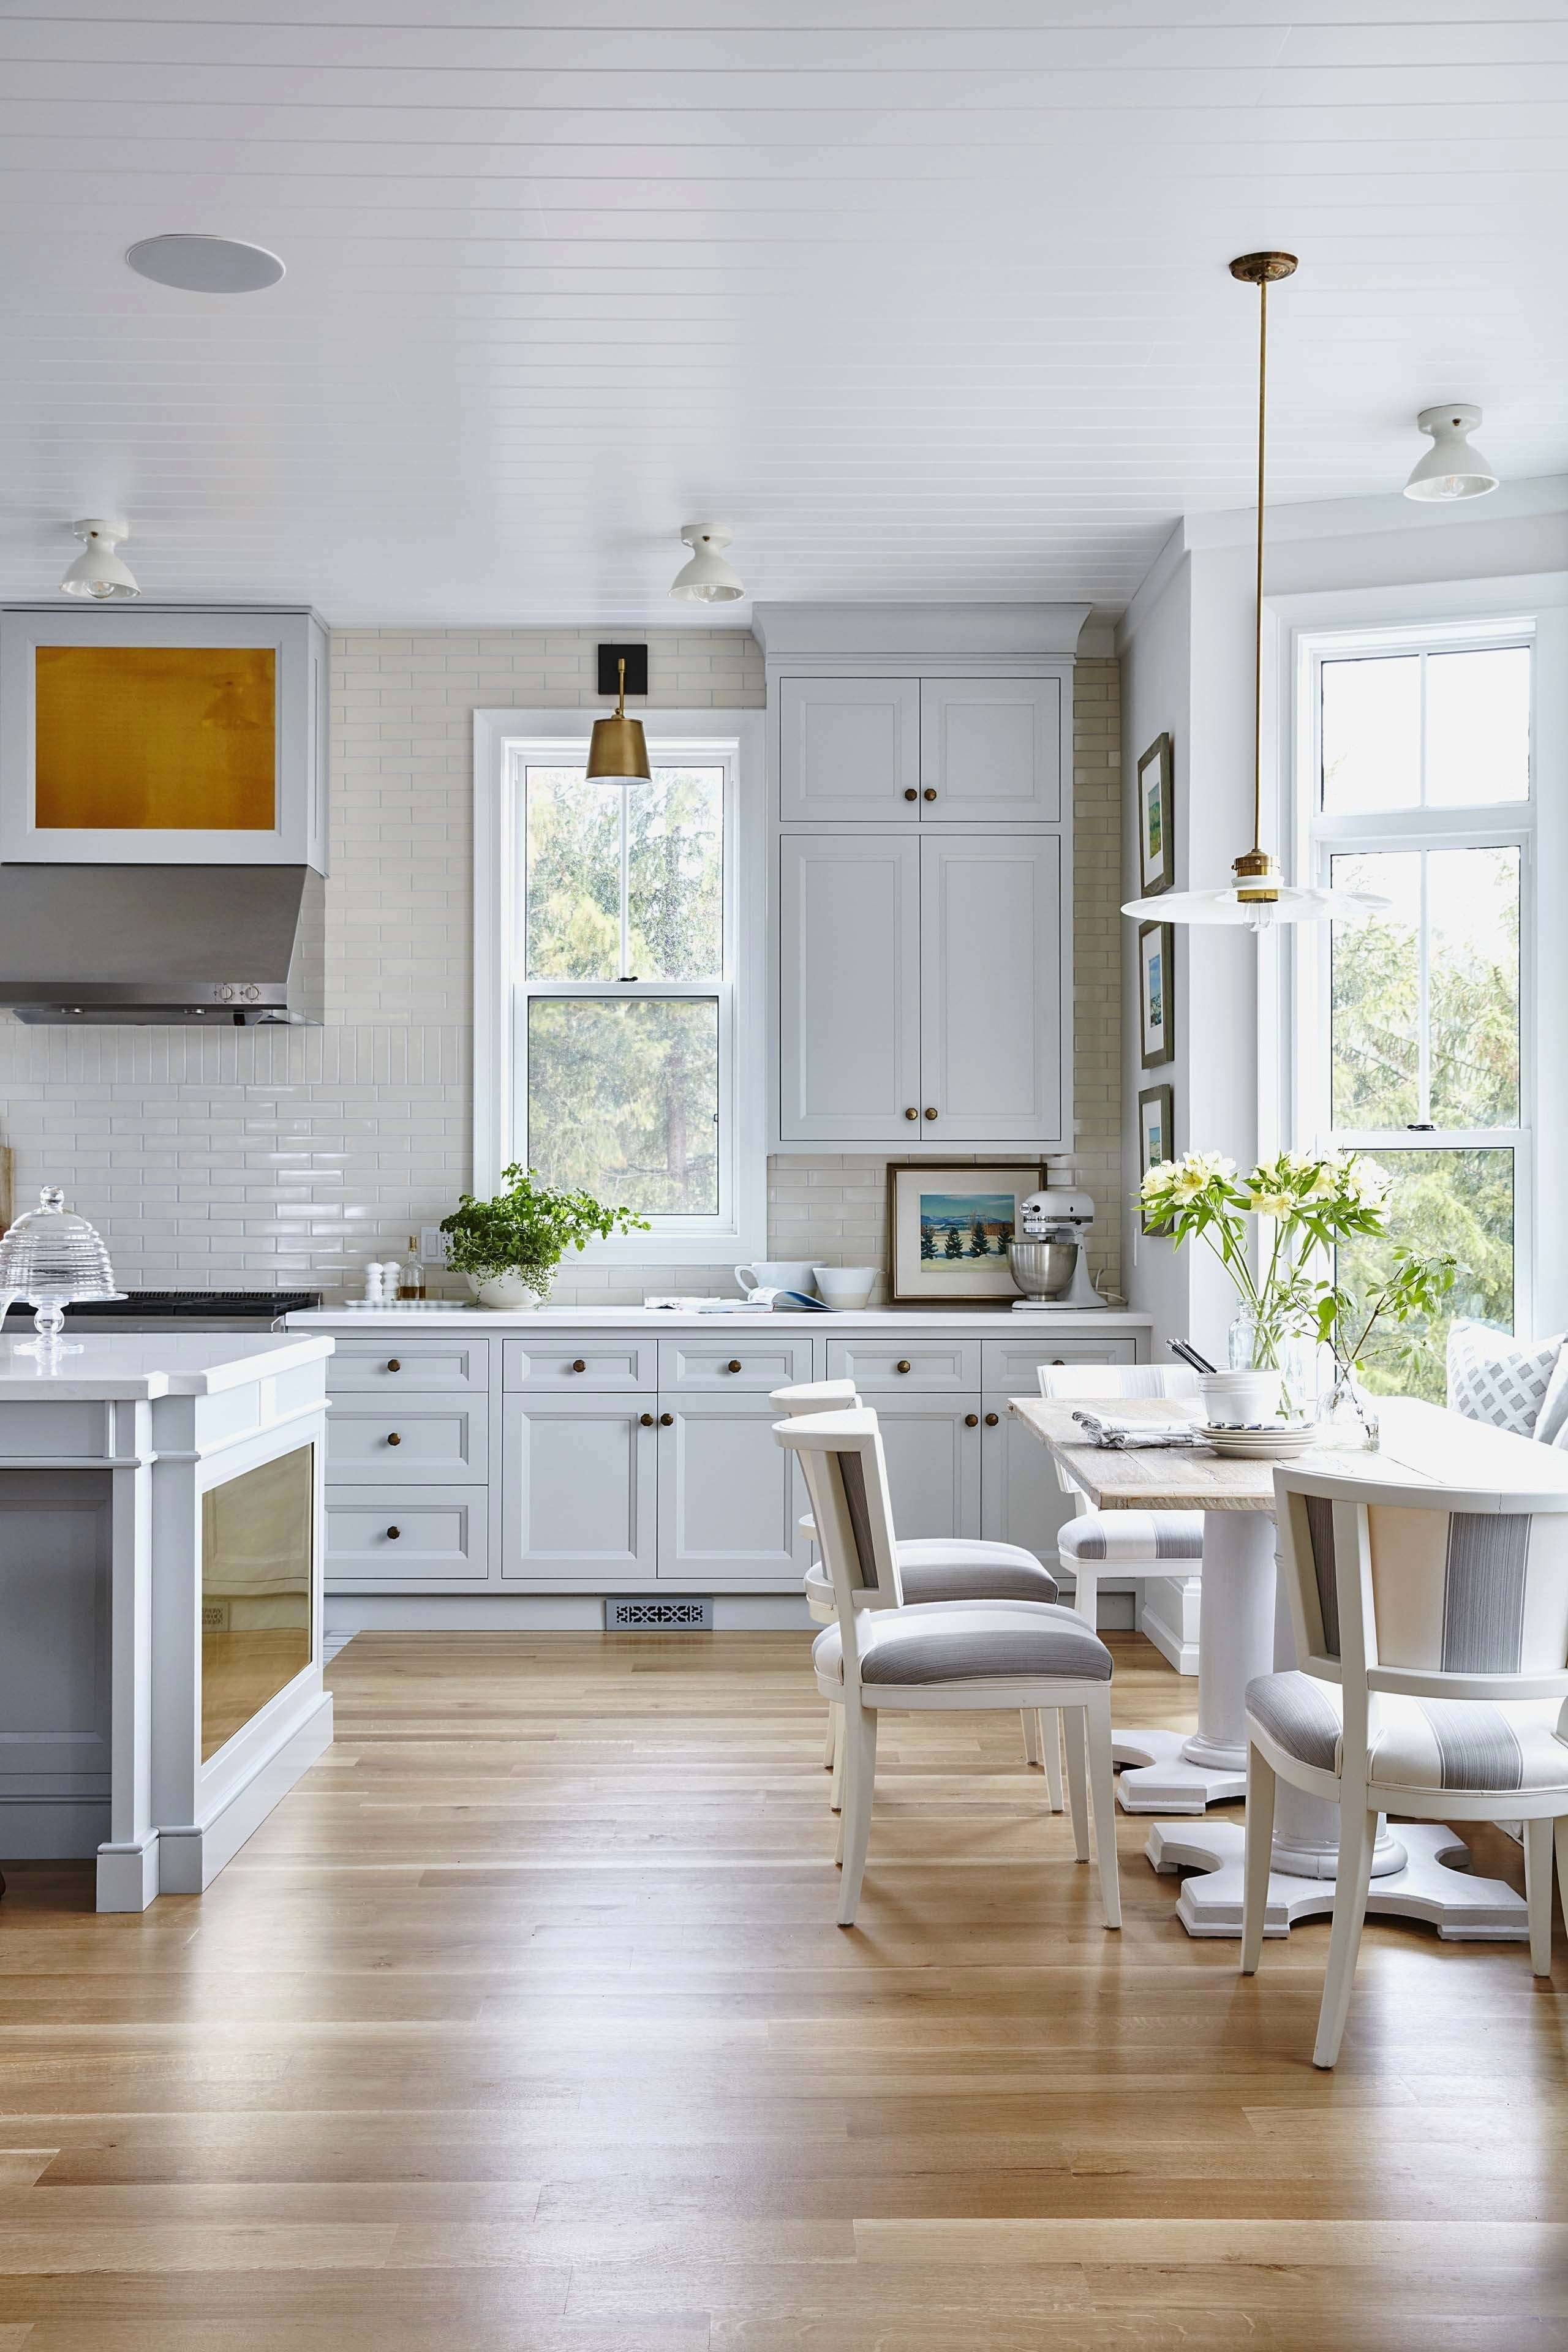 kitchen joys kitchen joys kitchen 0d kitchens design ideas design of pretty kitchen backsplashes